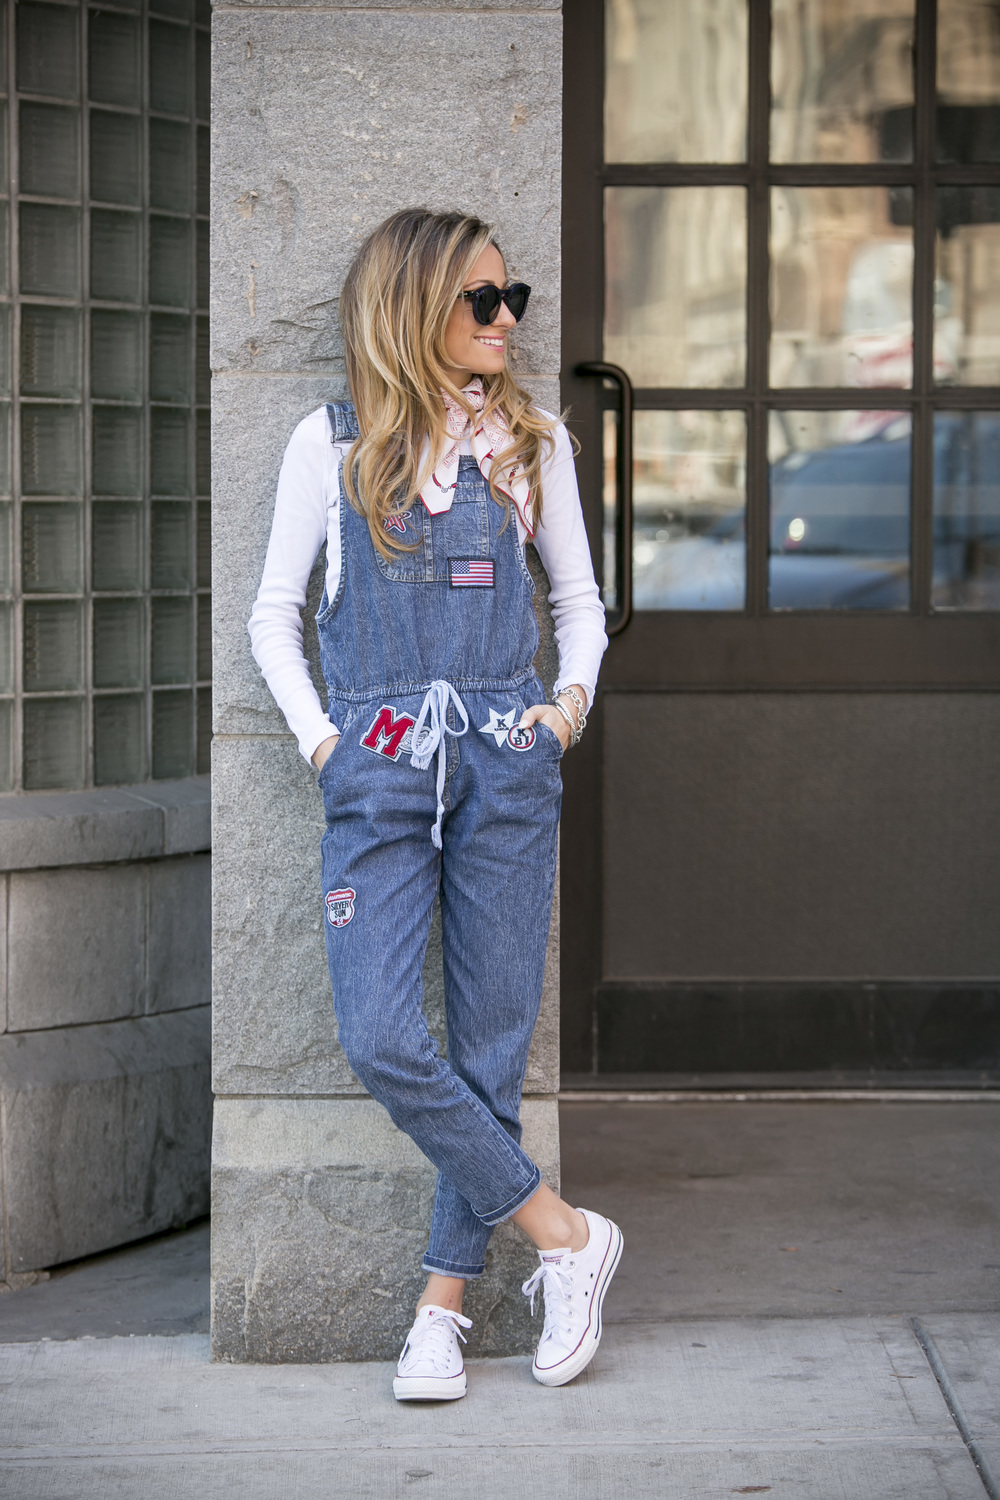 Streetstyle overalls worn with converse